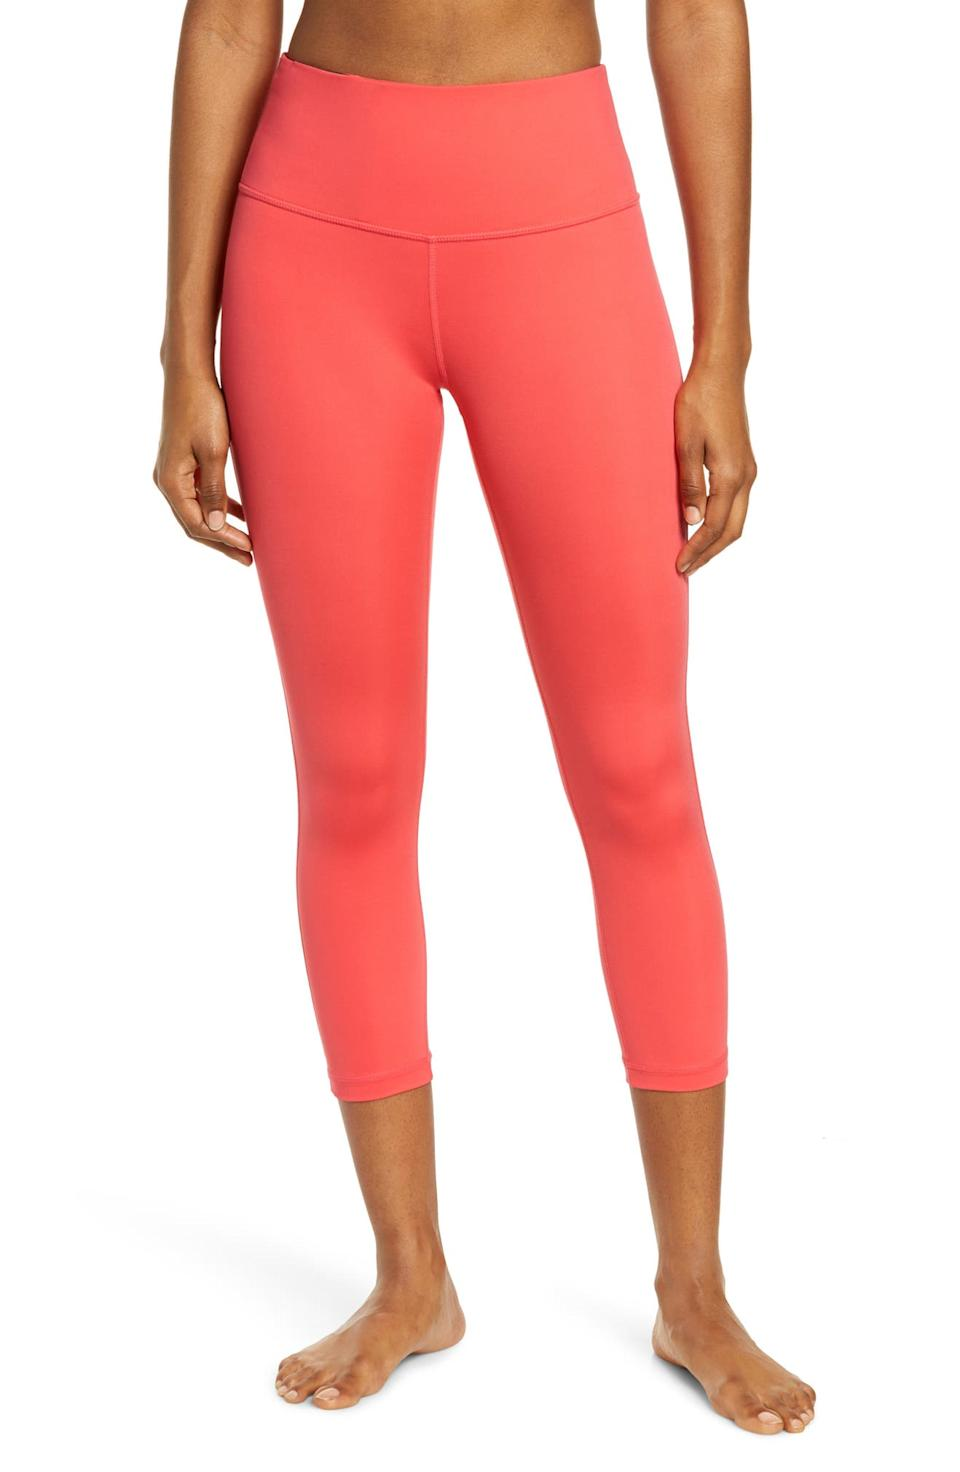 Studio Crop Lite Leggings. Image via Nordstrom.